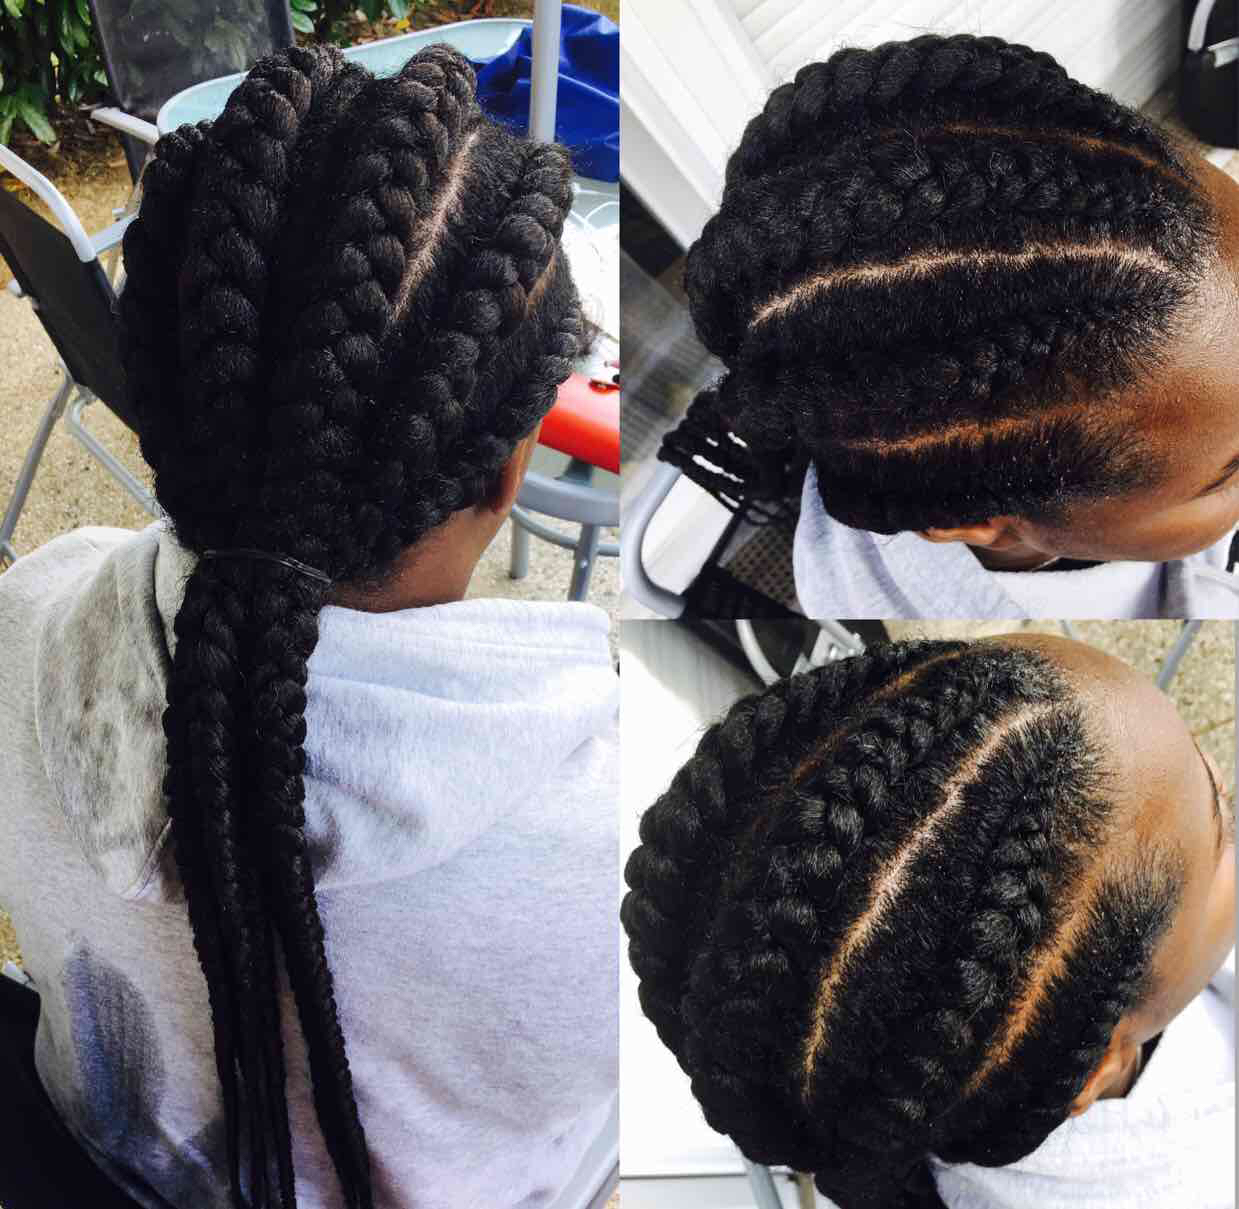 salon de coiffure afro tresse tresses box braids crochet braids vanilles tissages paris 75 77 78 91 92 93 94 95 NLFFWUXC